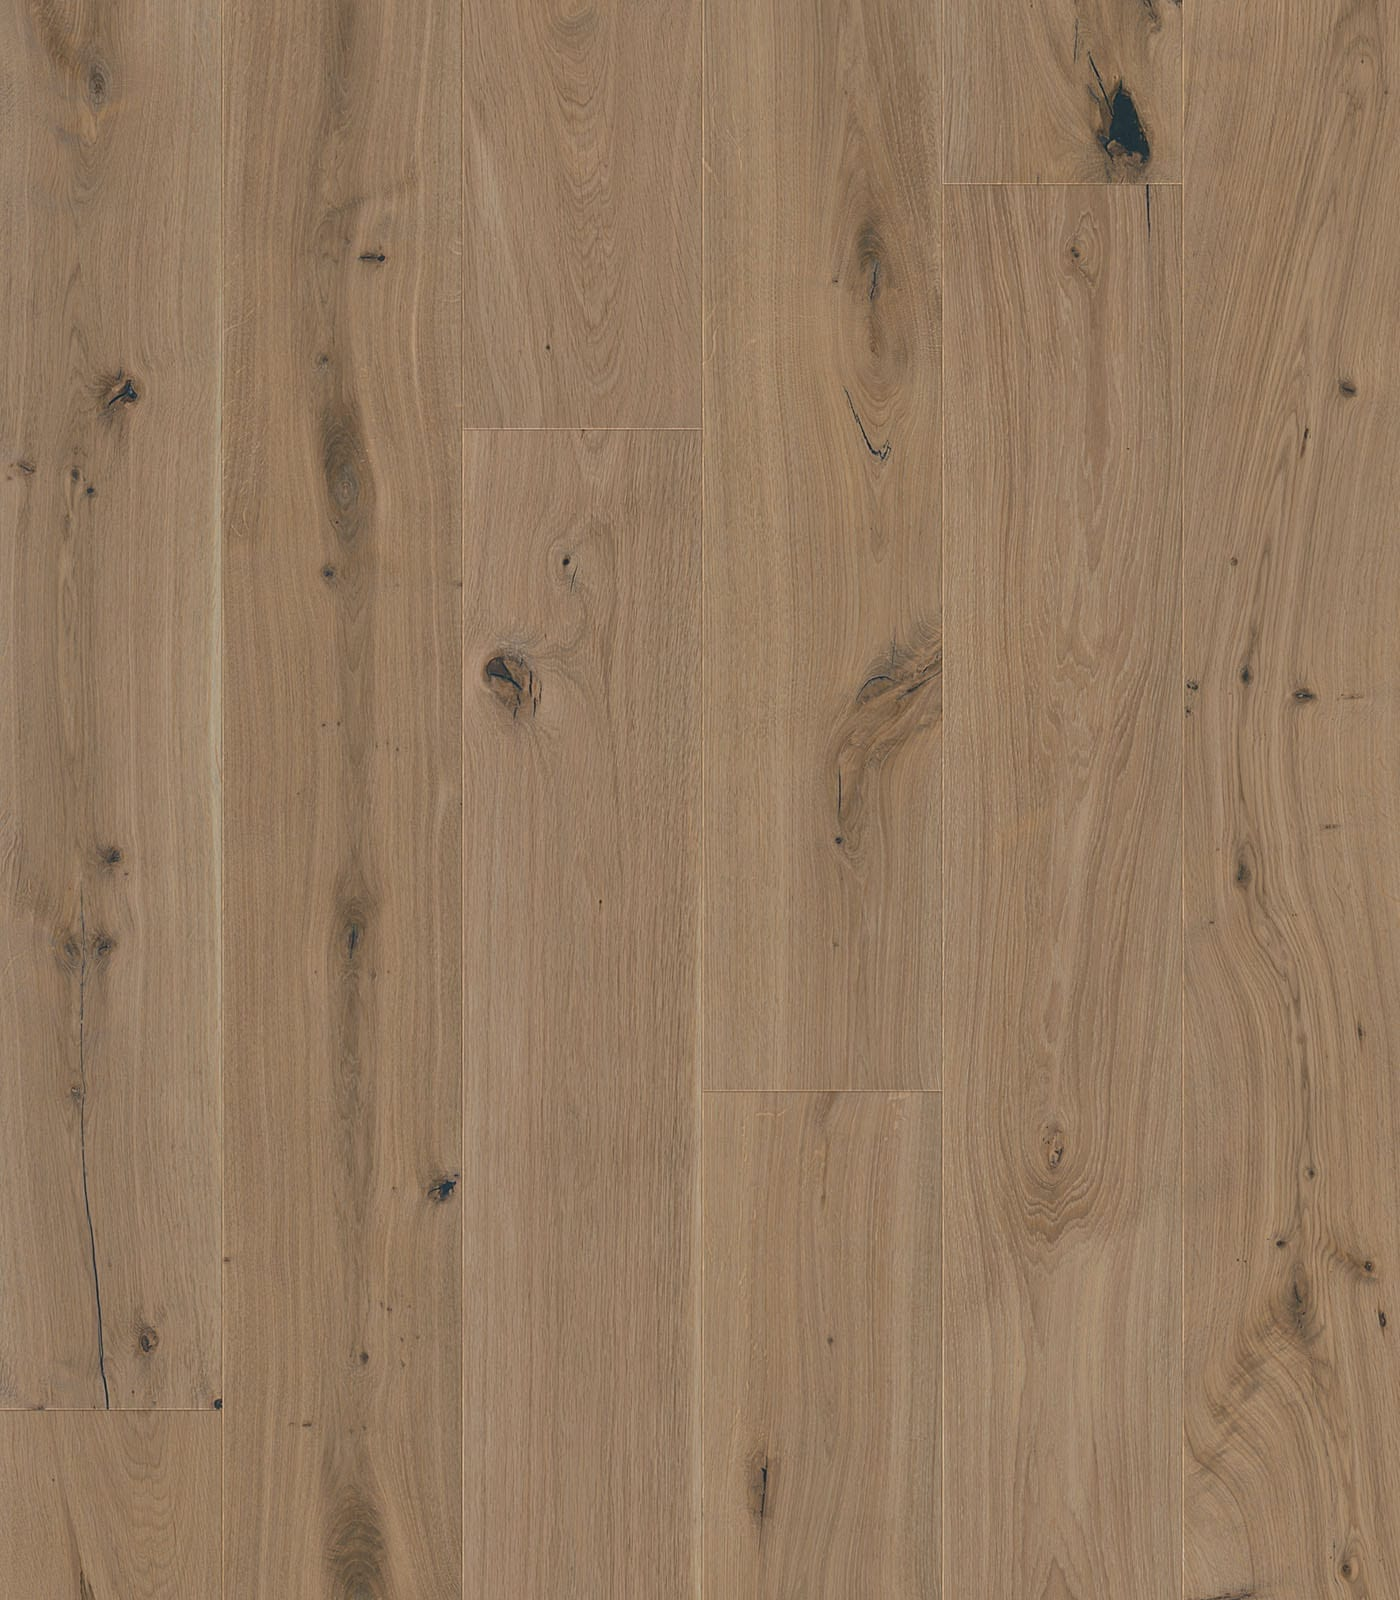 Davos-European Oak floors-Lifestyle collection-flat